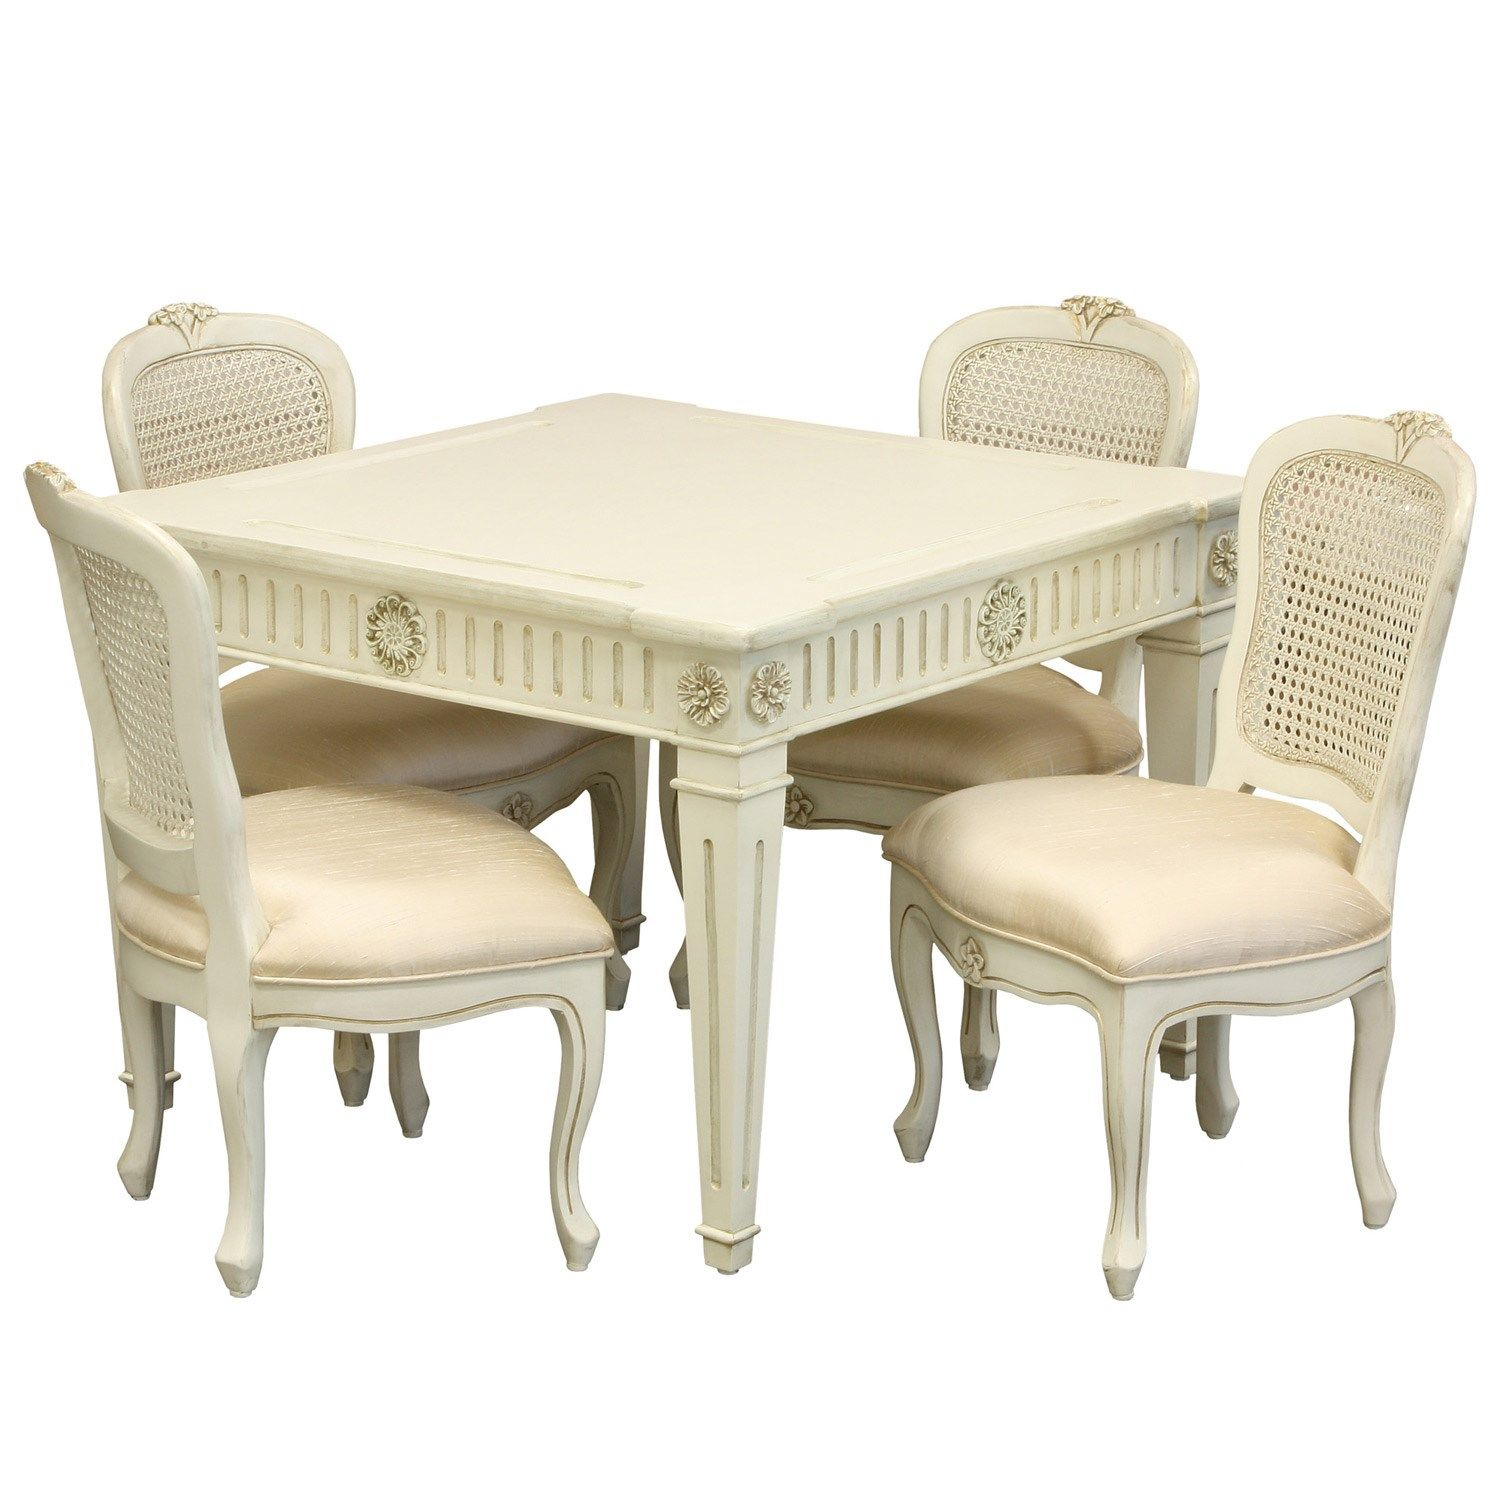 AFK Table Chair Set Juliette Versailles laylagrayce AFK